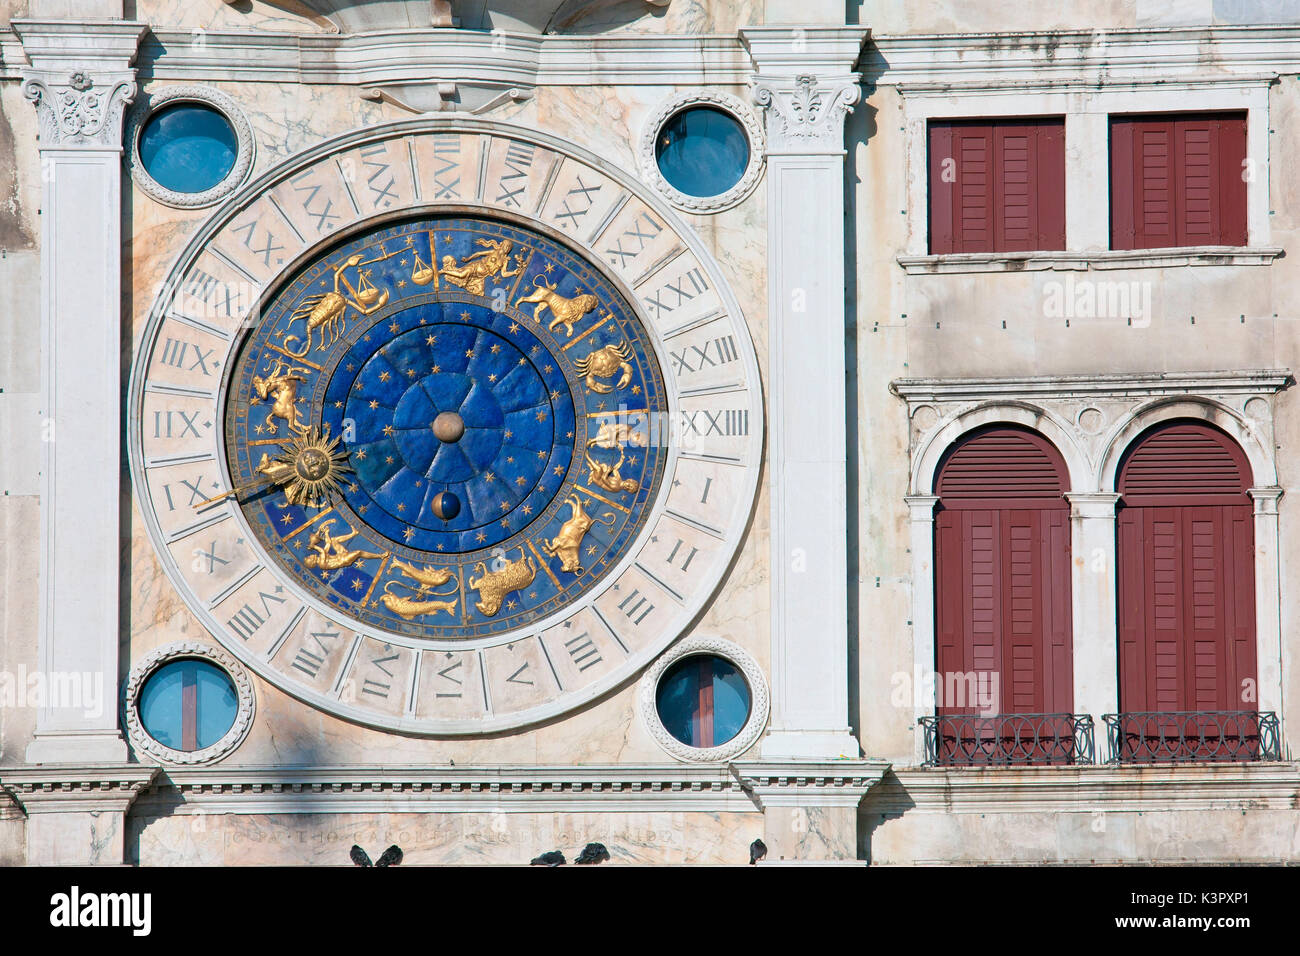 A detail of the famous Clock Tower, one of the most significant Renaissance buildings in Venice, Veneto Italy Europe - Stock Image